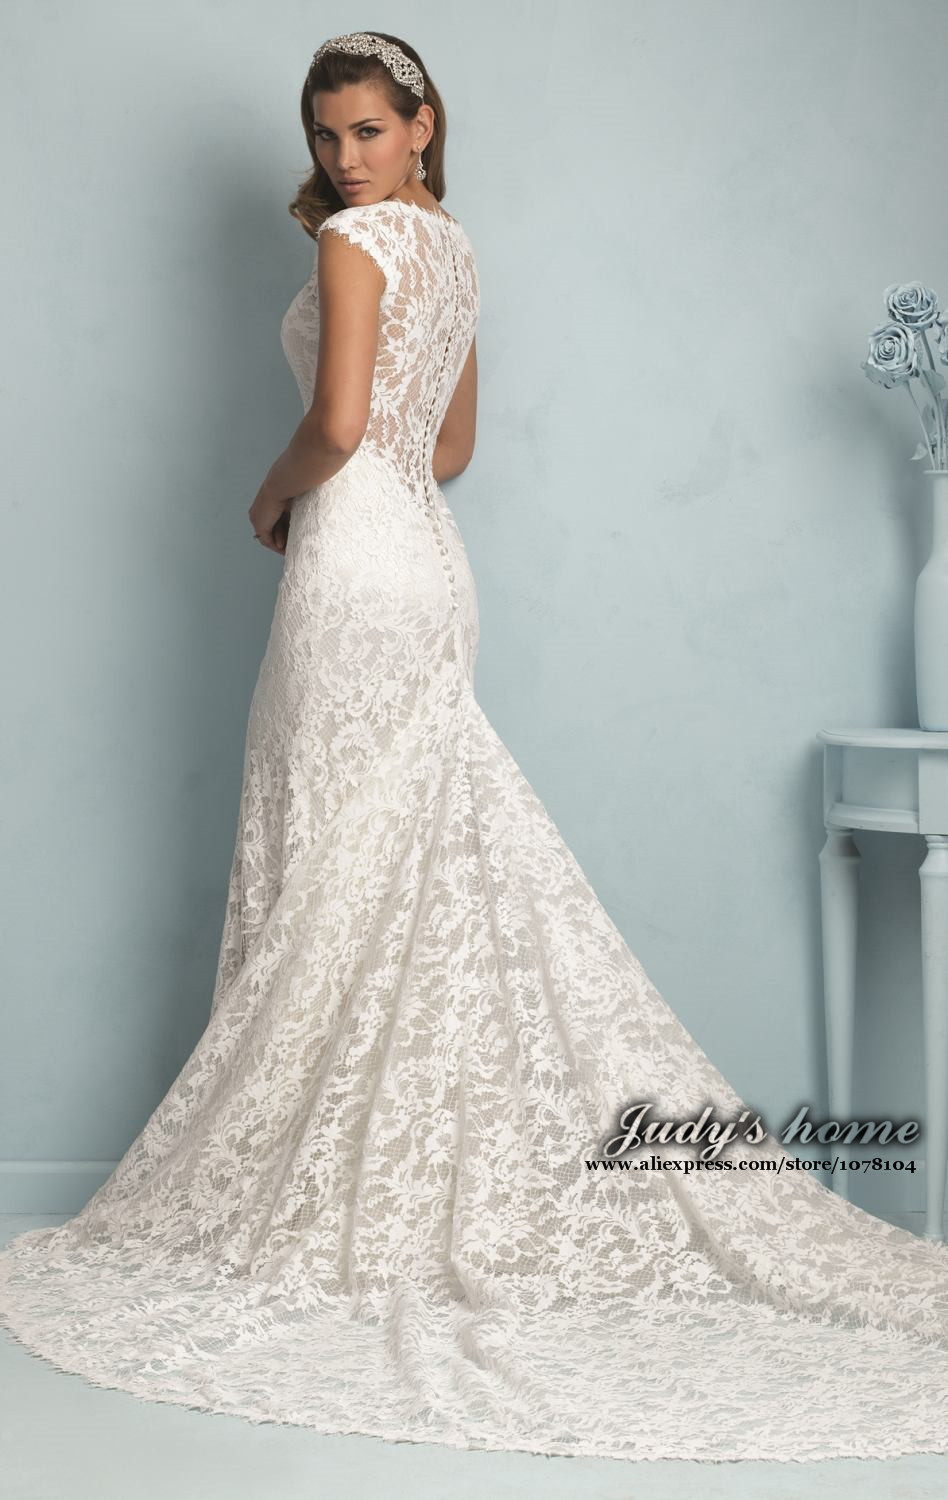 Designer Lace Wedding Dresses | Dress images